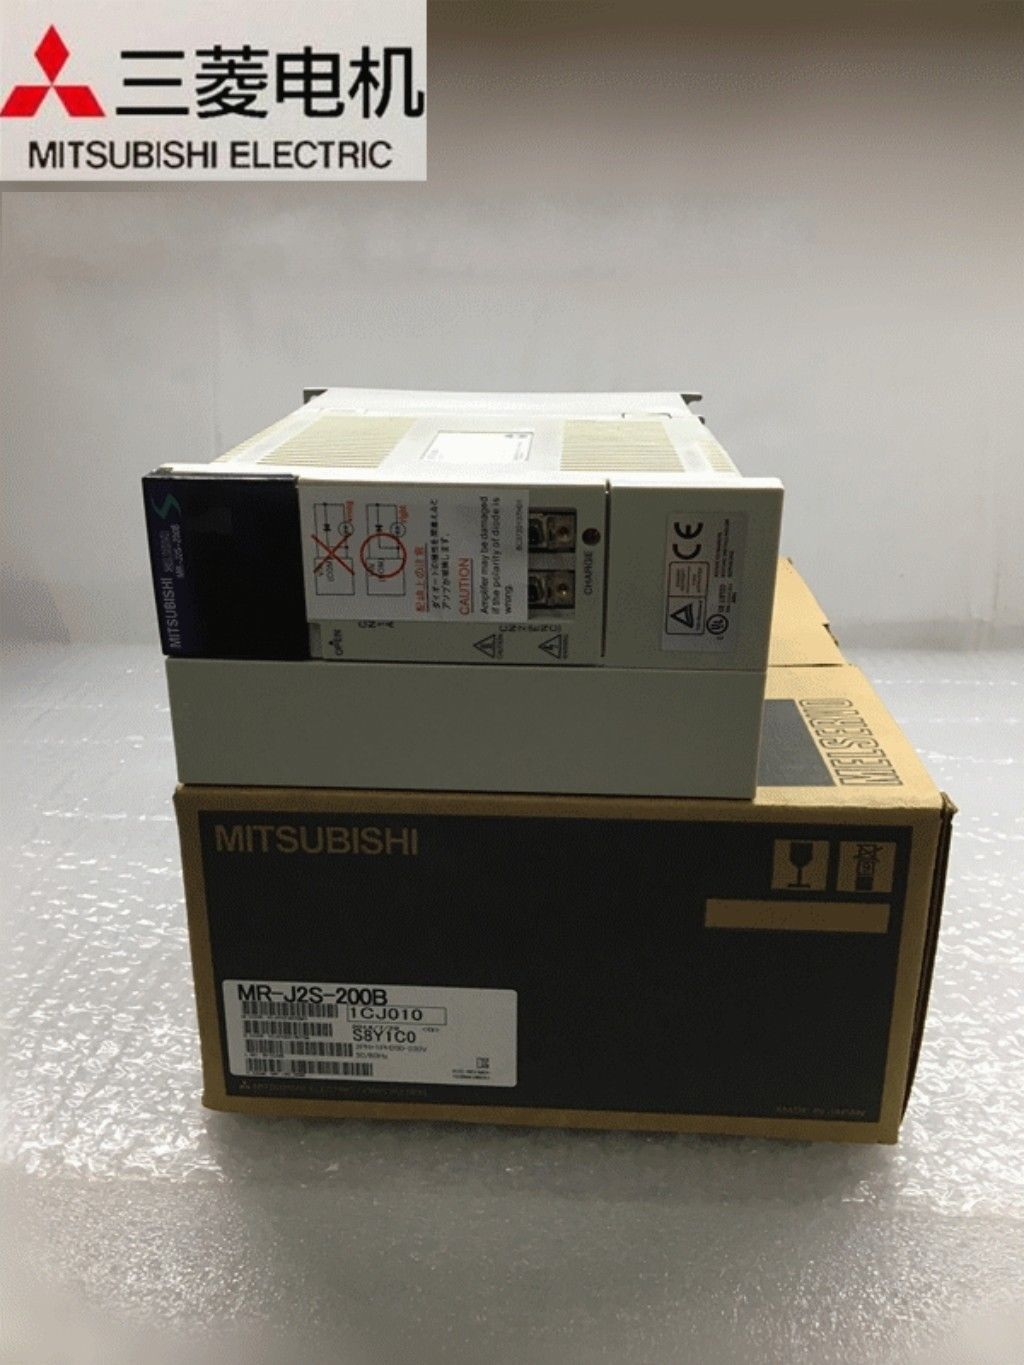 100% New Mitsubishi Servo Drive MR-J2S-200B In Box MRJ2S200B